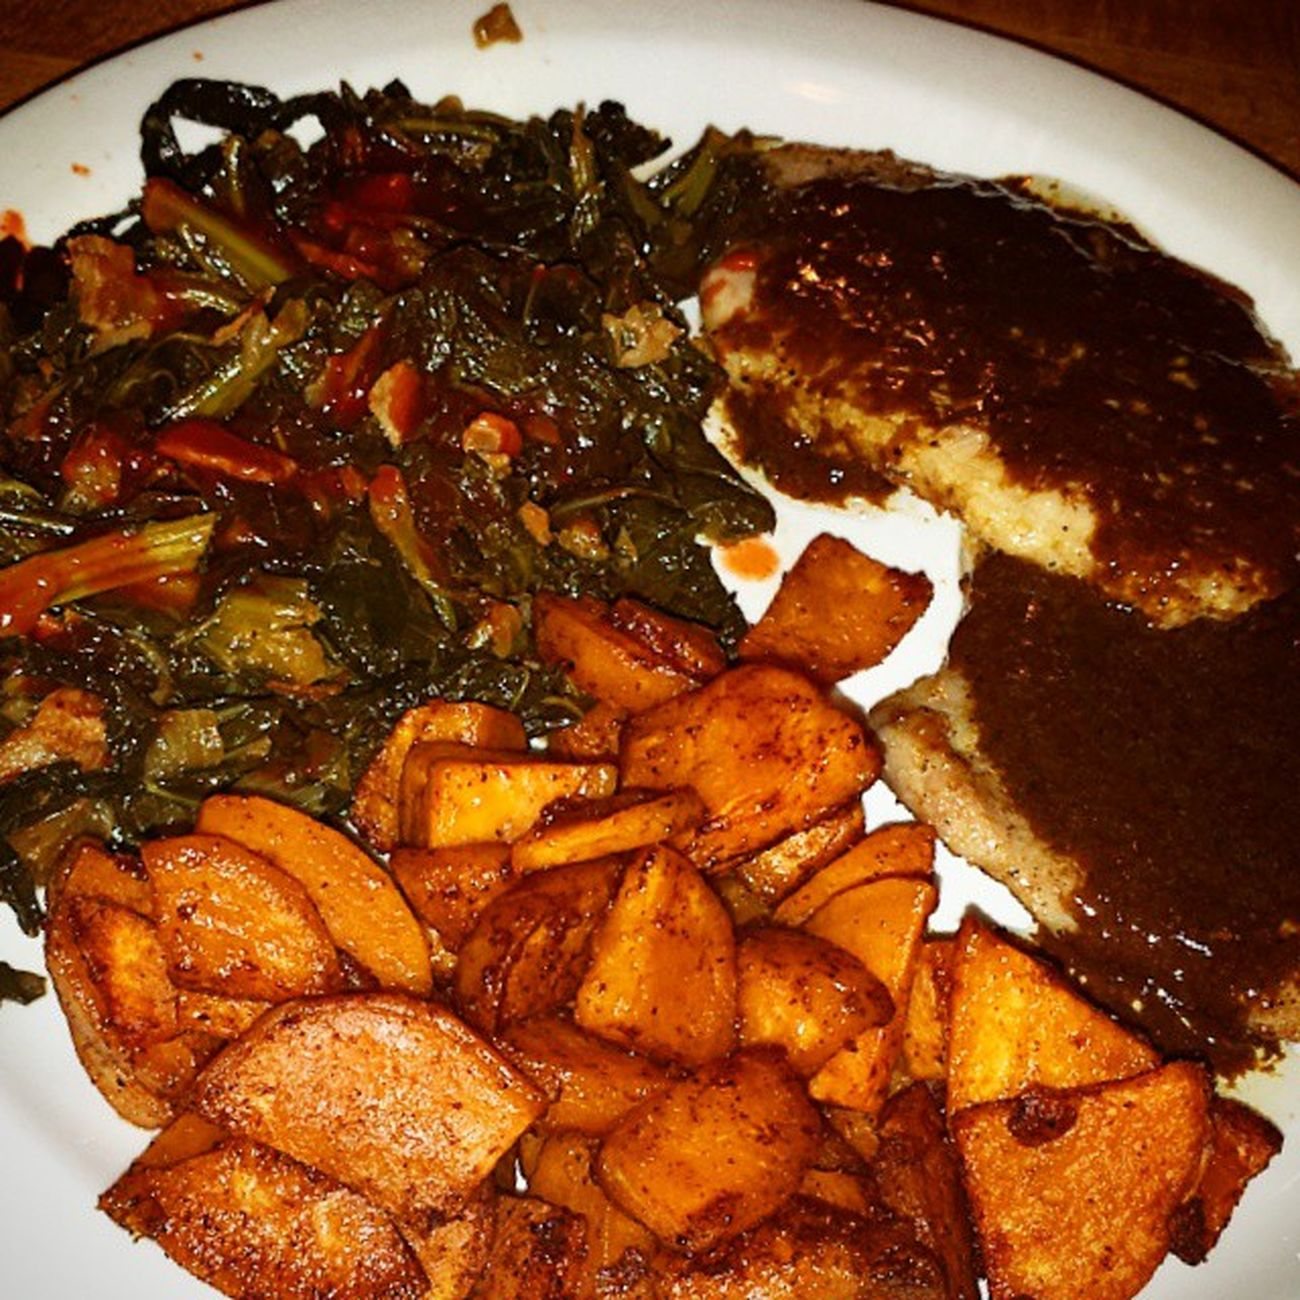 "Full on Paleo meal tonight! Pan ""fried"" pork chops, Paleo gravy (pan drippings, coconut milk, and a tsp tapioca flour), homemade greens trio (collards, kale, and turnip) with onions, bacon and hot sauce, and oven roasted cinnamon sweet potatoes. I put half of this plate up for lunch tomorrow and I'm still STUFFED!!! Paleo Whatsfordinner Porkchops PaleoGravy SweetPotatoes EatClean IAmStuffed"